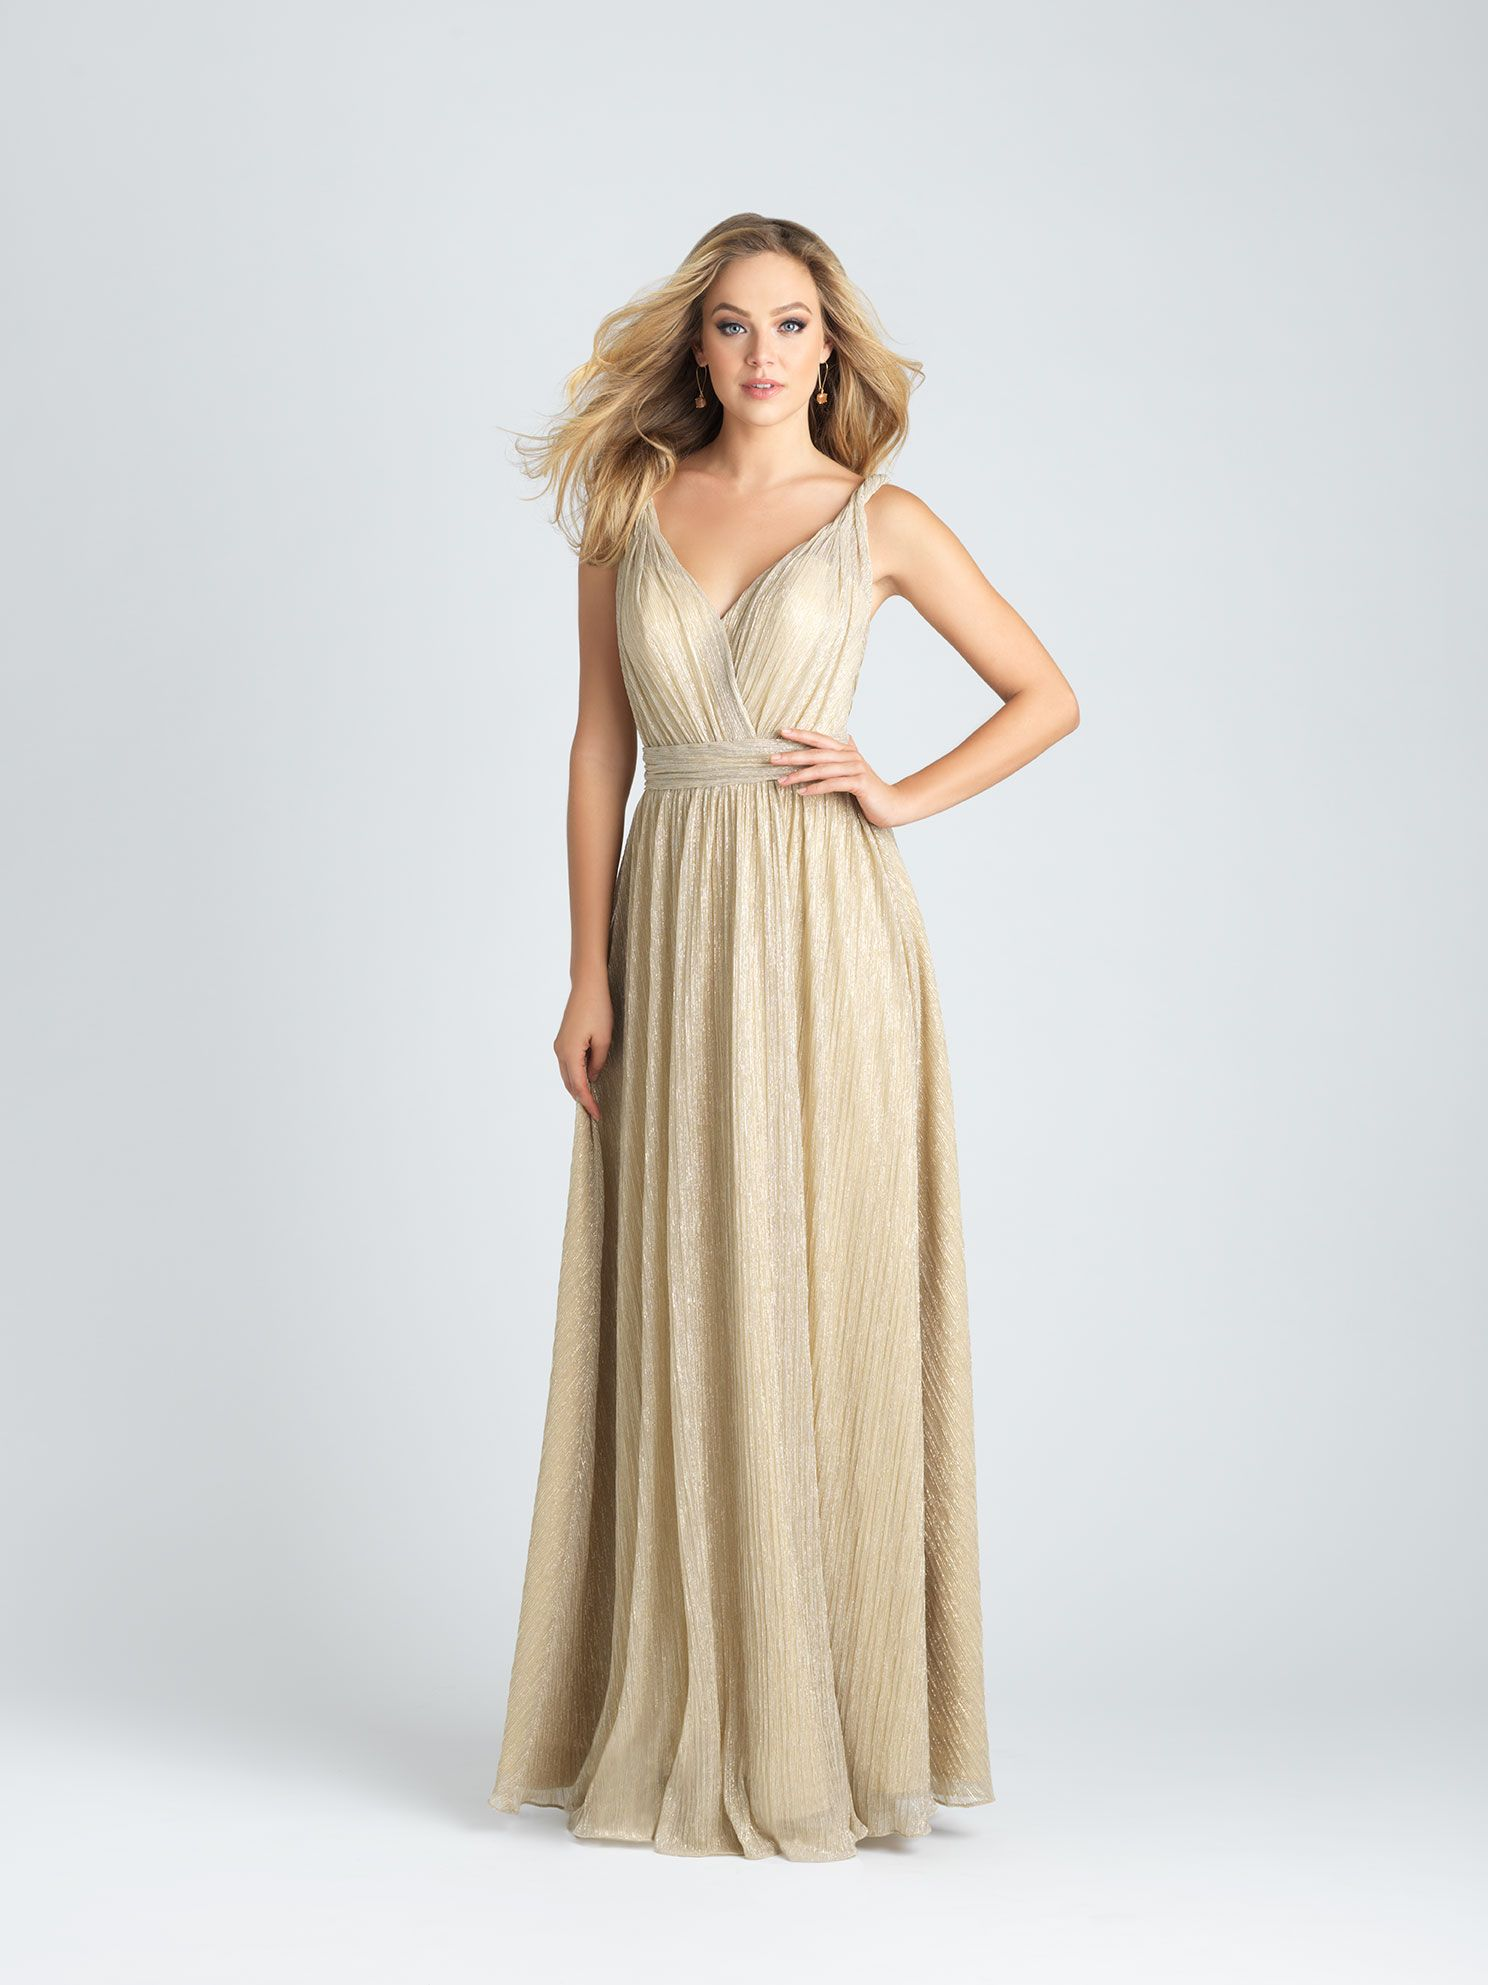 Style: 1516. We love a retro silhouette, and this shimmering gown ...